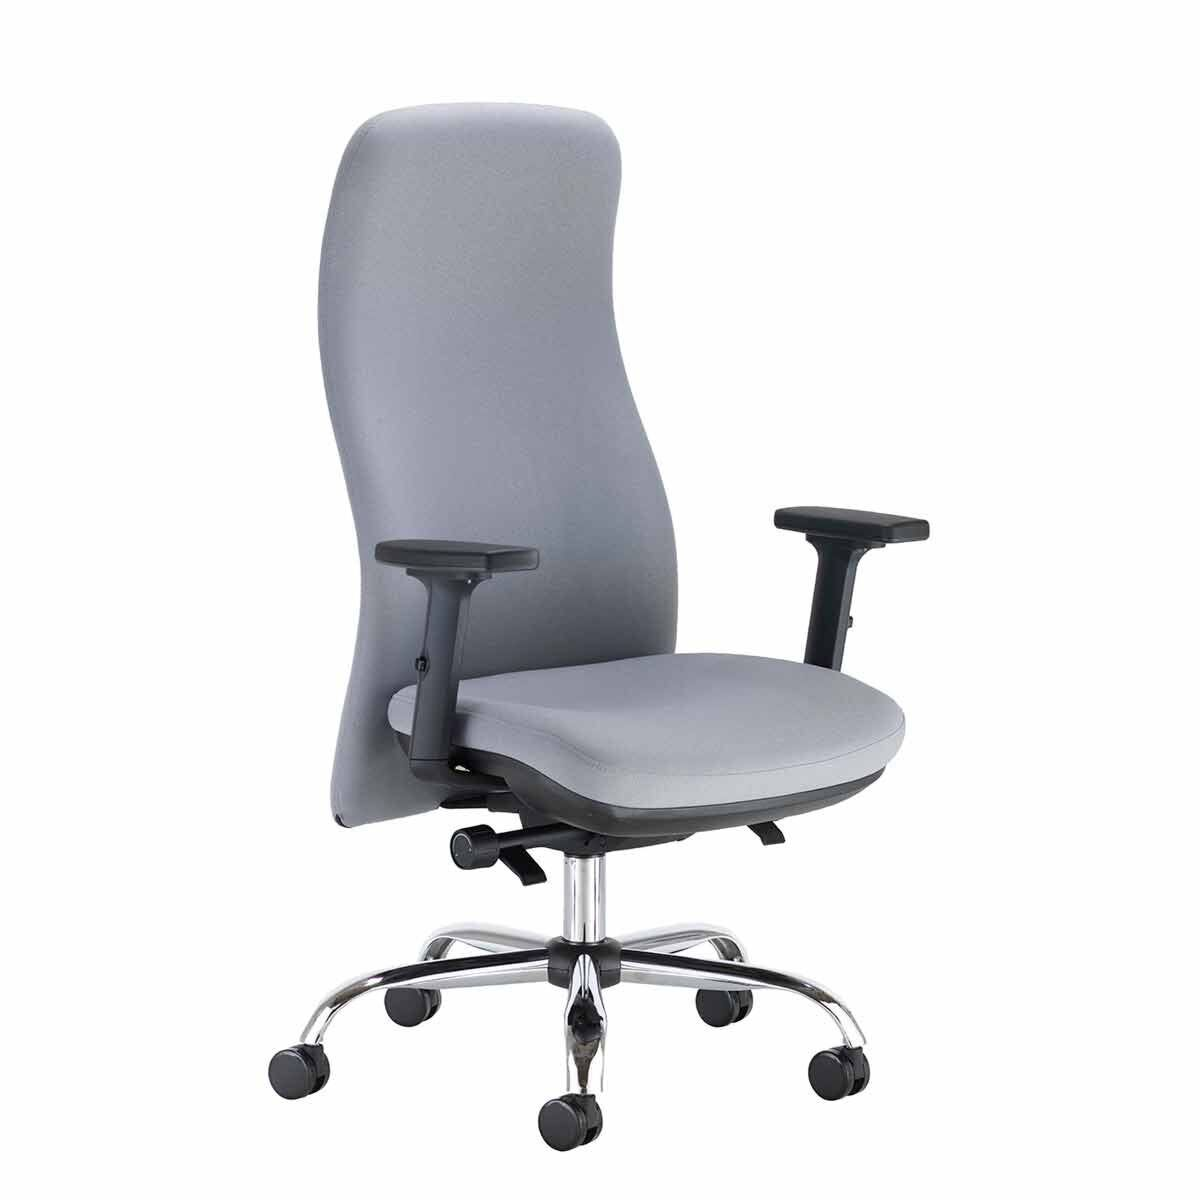 TC Office Ergonomic Posture Chair Grey